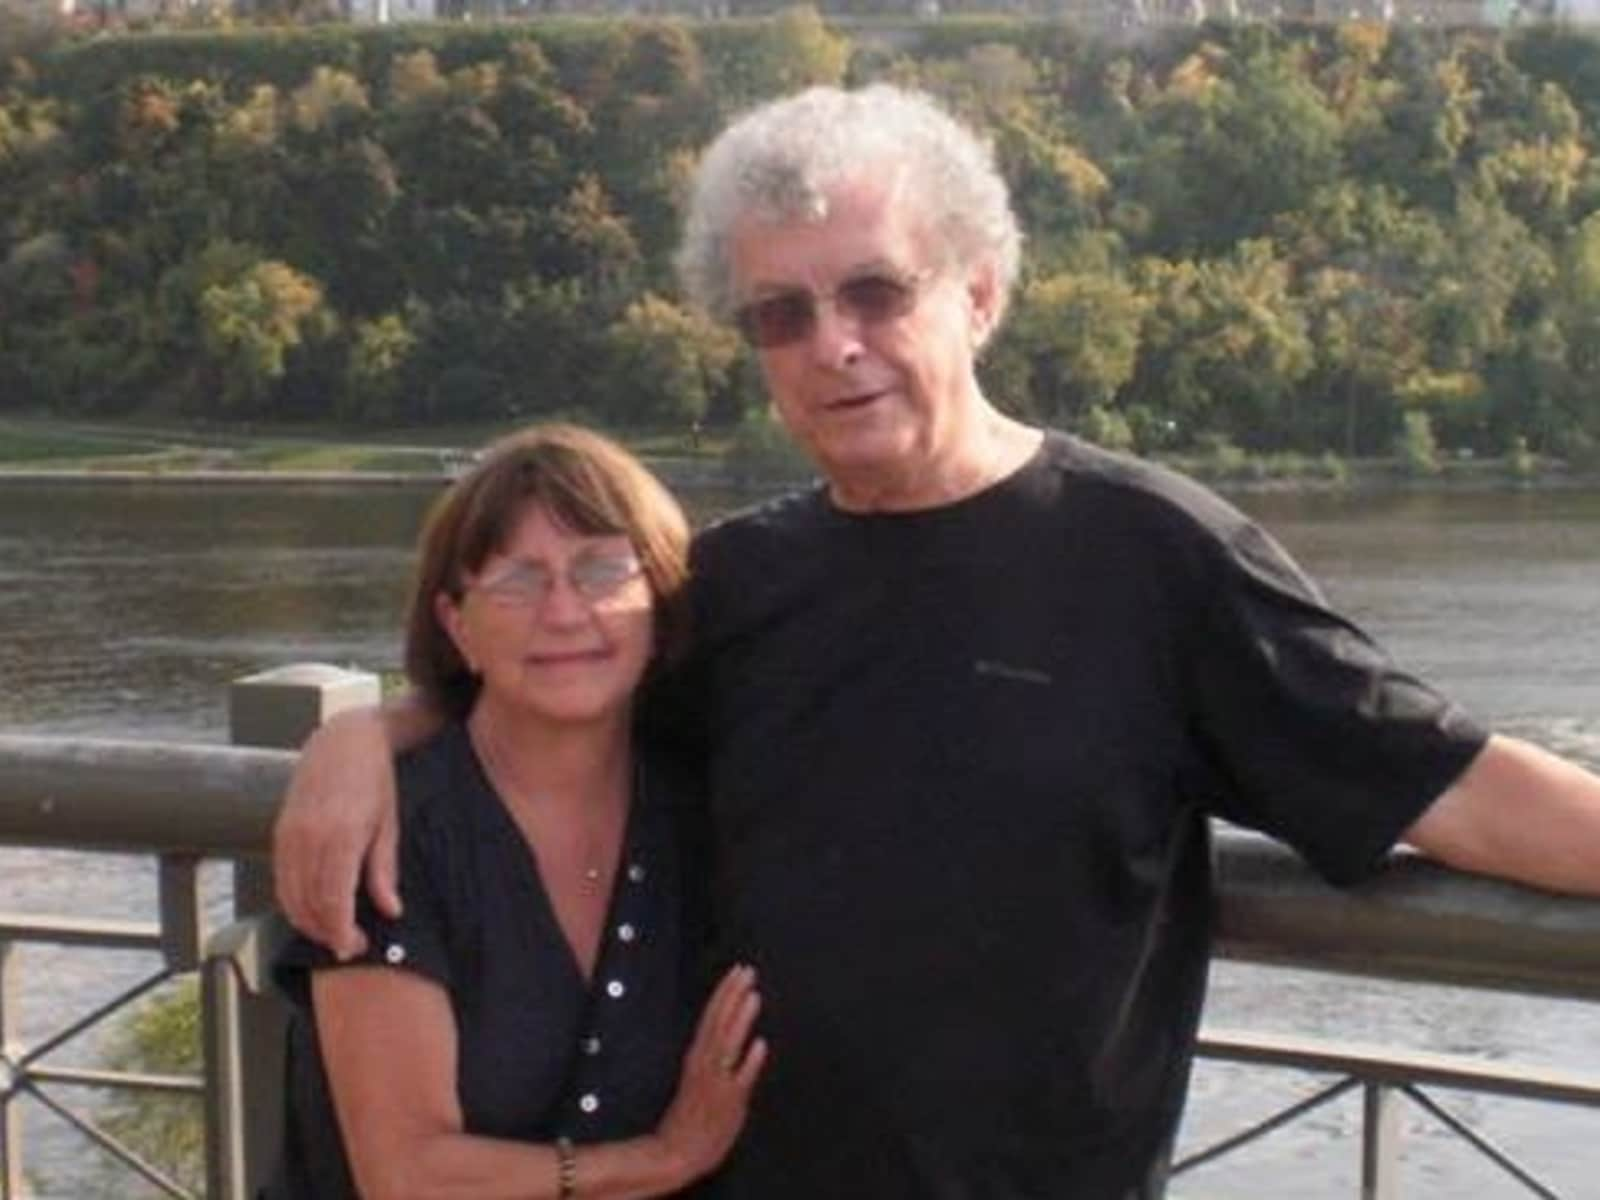 Kathryn & Roger from Miramichi, New Brunswick, Canada